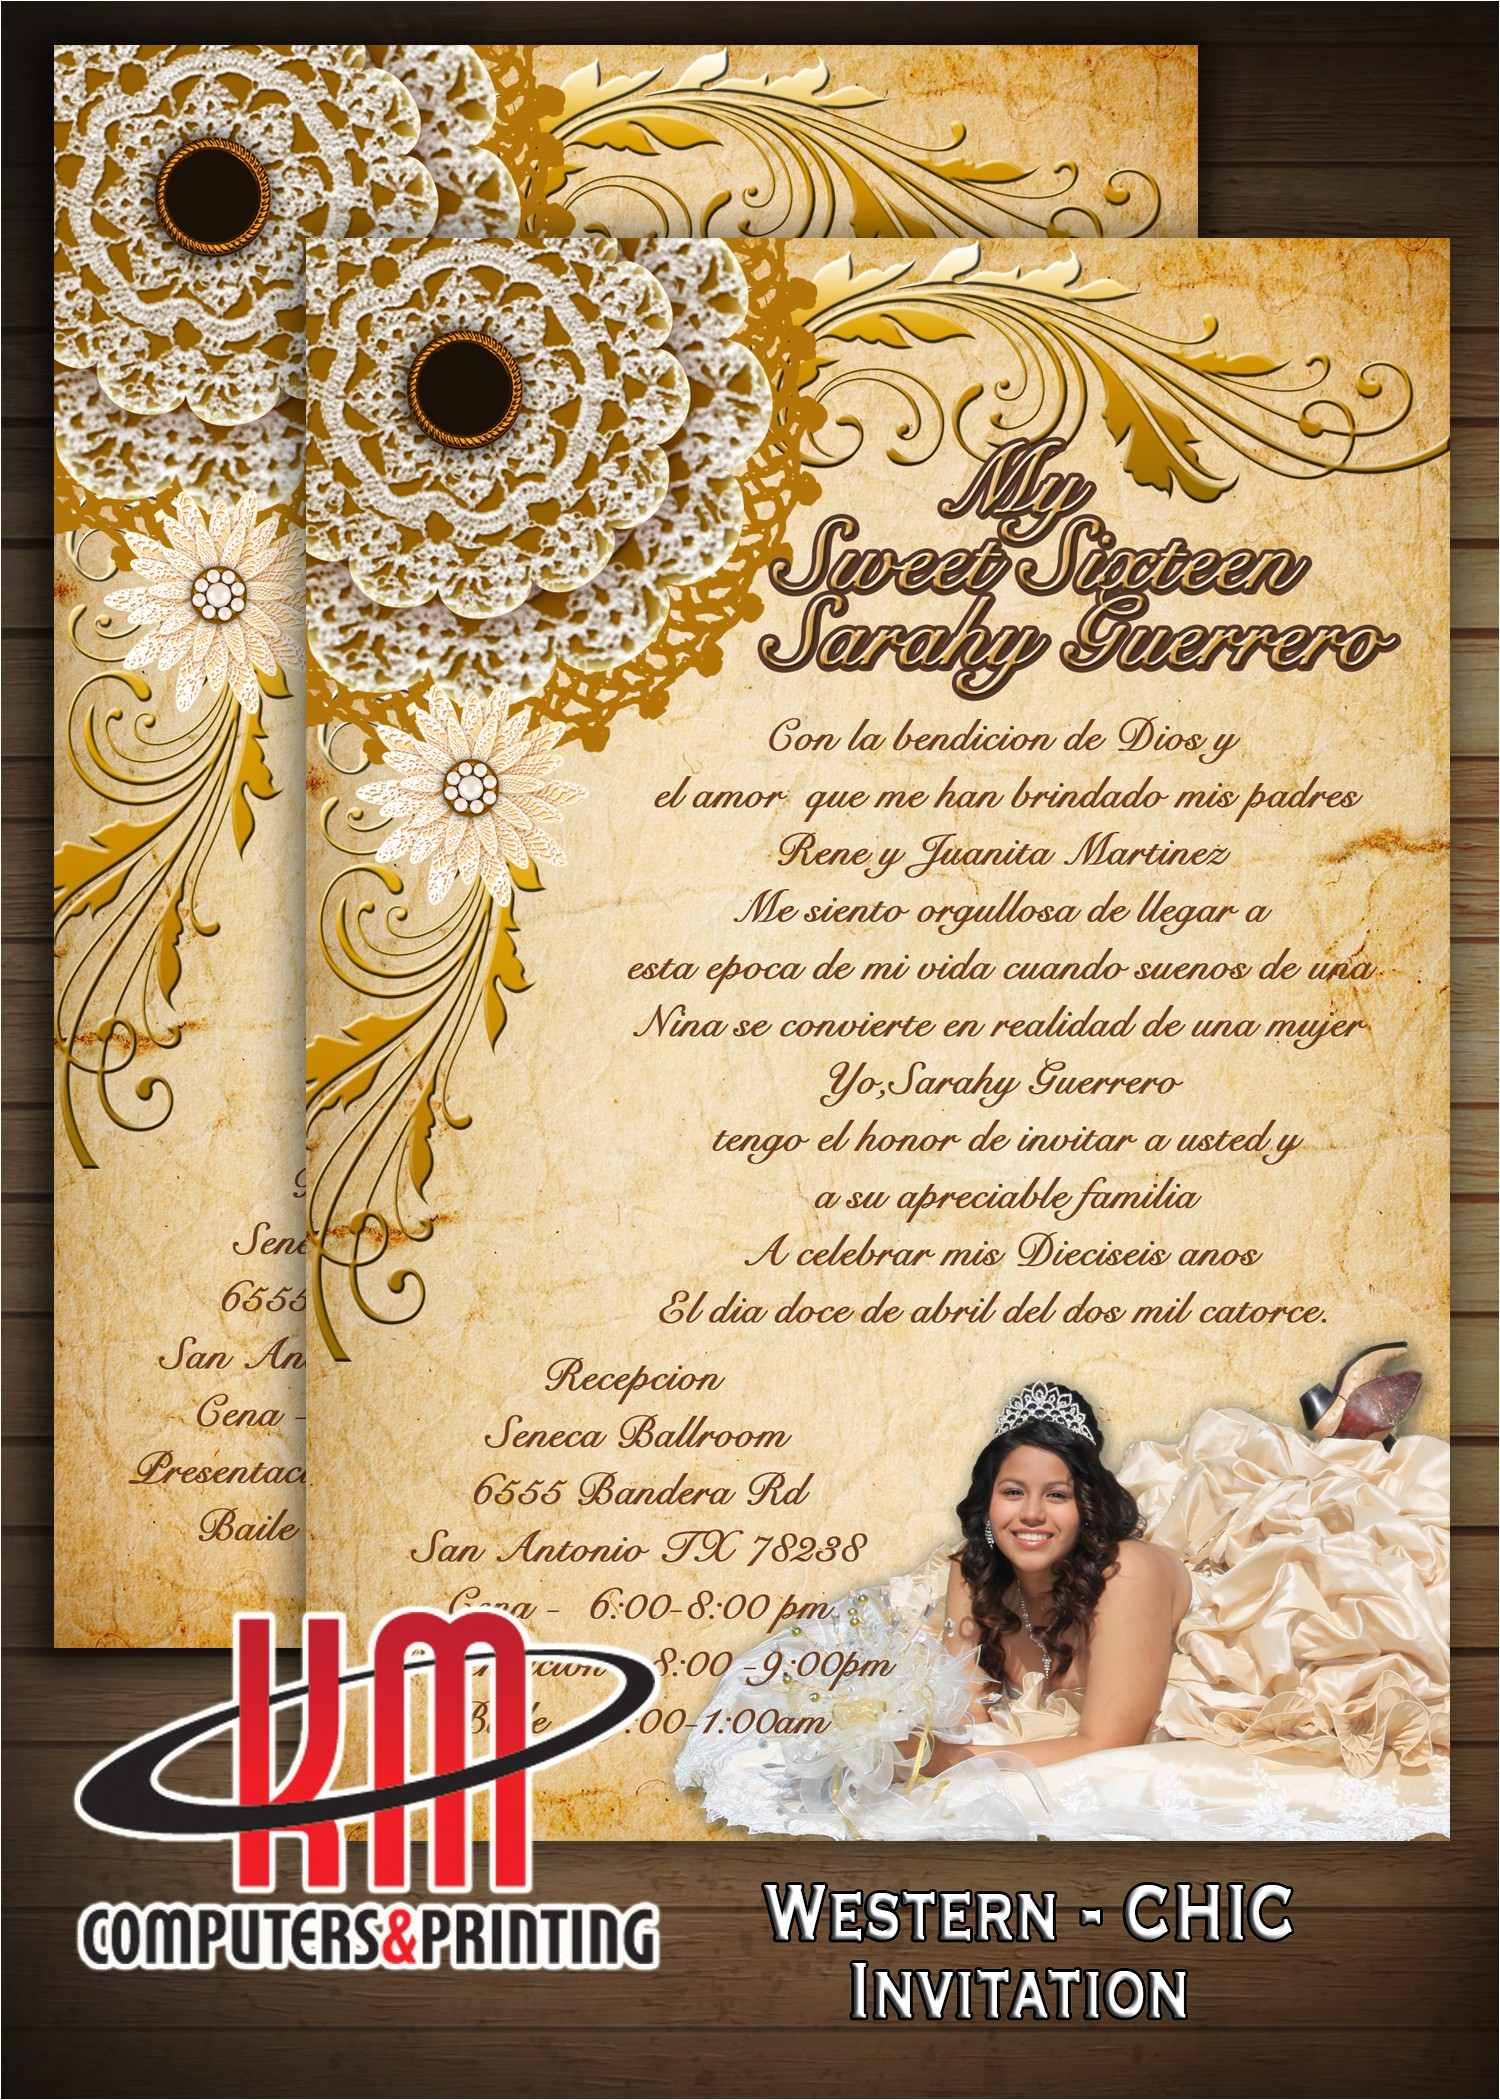 western chic invitations for sweet16 or quincea era